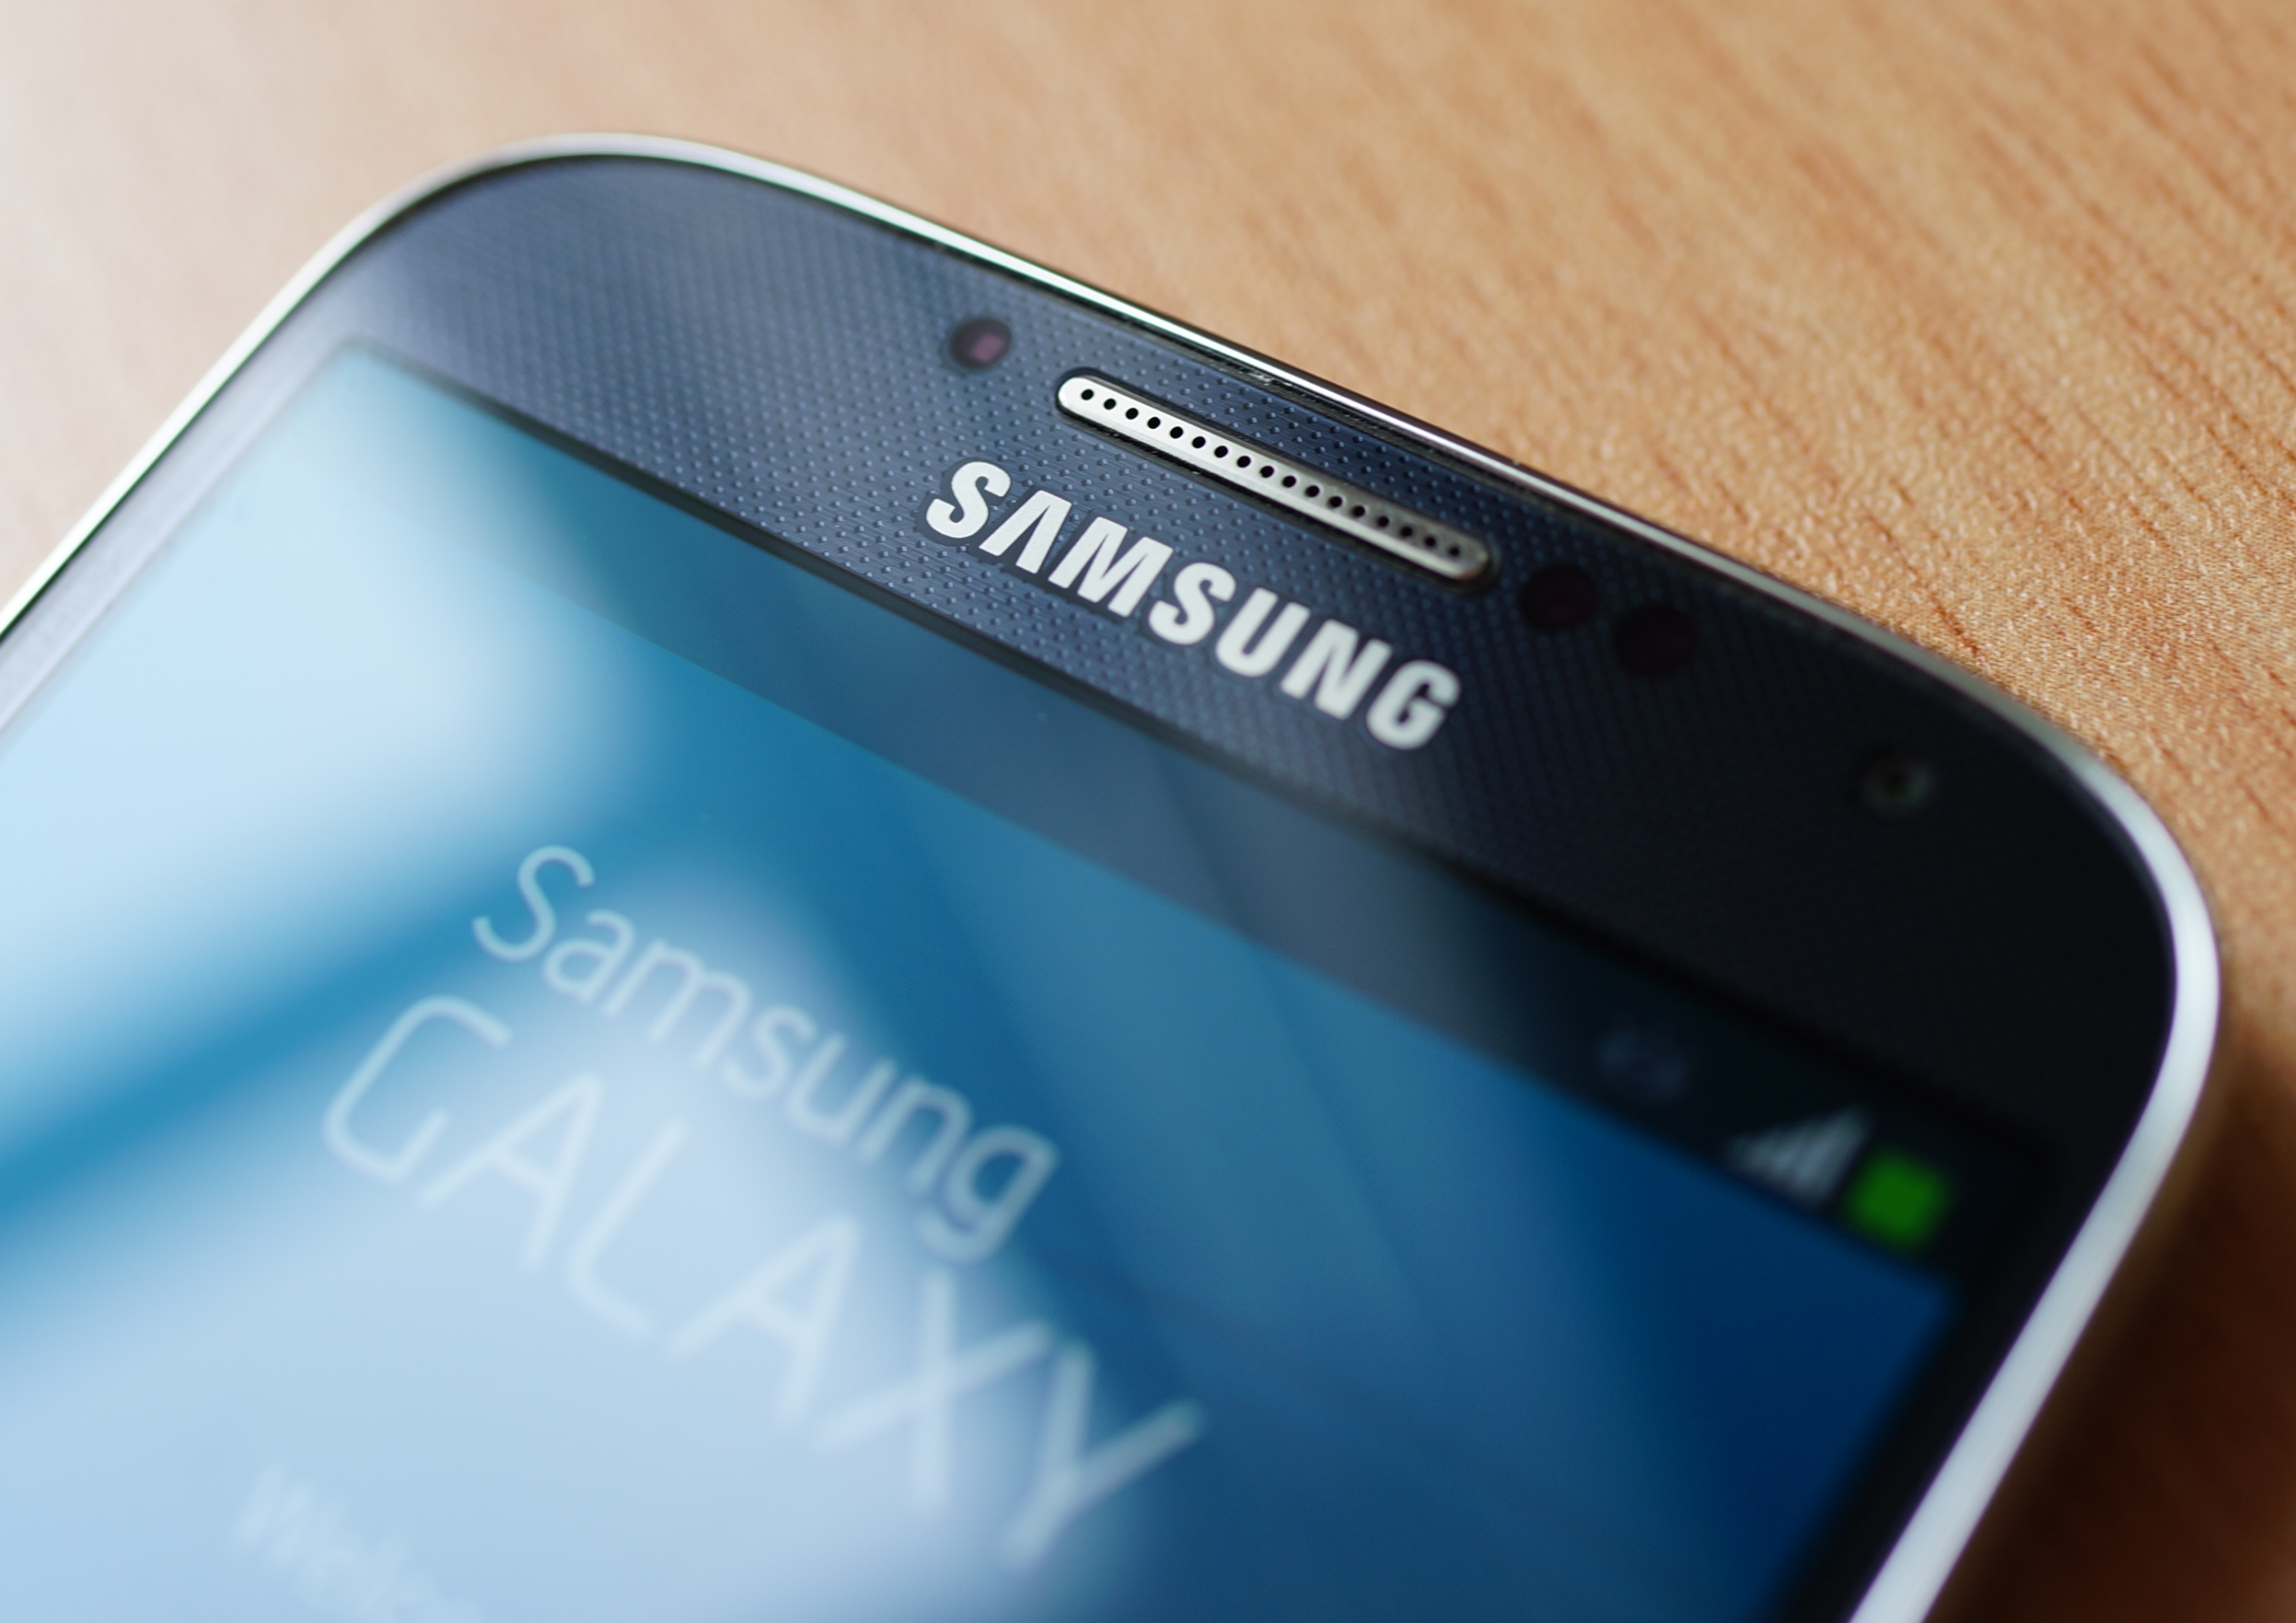 Samsung Galaxy S4: Android 5.0.1 Lollipop uitgerold in Nederland